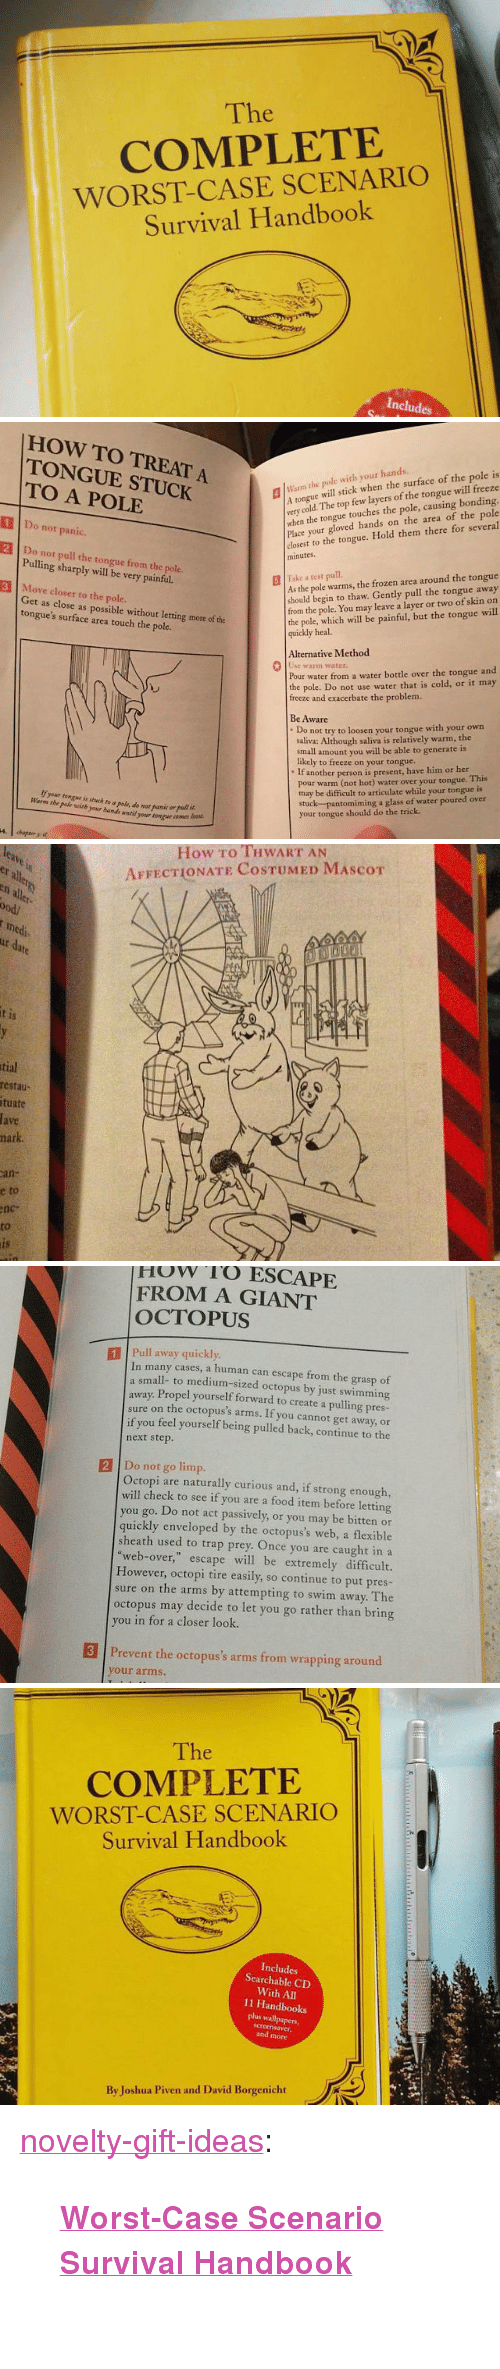 "Food, Frozen, and Trap: The  COMPLETE  WORST-CASE SCENARIO  Survival Handbook  Includes   HOW TO TREAT A  TONGUE STUCK  TO A POLE  lWarm the pole with your hands.  Atongue will stick when the surface of the pole is  very  when the tongue touches the pole, causing bonding.  Place your gloved hands on the area of the pole  closest to the tongue. Hold them there for several  minutes  cold. The top few layers of the tongue will freeze  1 Do not panic.  2 Do not pull the tongue from the pole  3 Move closer to the pole.  Pulling sharply will be very painful.  As the pole warms, the frozen area around the tongue  should begin to thaw. Gently pull the tongue away  from the pole. You may leave a layer or two of skin on  the pole, which will be painful, but the tongue will  quickly heal.  | İlke z test pull.  Get as close as possible without letting more of the  tongue's surface area touch the pole.  Alternative Method  0  se warm water  Pour water from a water bottle over the tongue and  the pole. Do not use water that is cold, or it may  freeze and exacerbate the problem.  Be Aware  Do not try to loosen your tongue with your own  saliva: Although saliva is relatively warm, the  small amount you will be able to generate is  likely to freeze on your tongue..  If another person is present, have him or her  pour warm (not hot) water over your tongue. This  may be difficult to articulate while your tongue is  stuck-pantomiming a glass of water poured over  your tongue should do the trick  Warm the pole wih yr ui wti  your ton   How To THWART AN  AFFECTIONATE COSTUMED MAScoT  er  all  ood/  medi  1S  tial  restau  tuate  fave  hark  an-  e  to  nc-  to   How rO ESCAPE  FROM A GIANT  OCTOPUS  1 Pull away quickly  In many cases, a human can escape from the grasp of  small- to medium-sized octopus by just swimming  away. Propel yourself forward to create a pulling pres-  sure on the octopus's arms. If you cannot get away, or  if you feel yourself being pulled back, continue to the  next step.  2 Do not go limp.  Octopi are naturally curious and, if strong enough,  will check to see if you are a food item before letting  you go. Do not act passively, or you may be bitten or  quickly enveloped by the octopus's web, a flexible  sheath used to trap prey. Once you are caught in a  ""web-over,"" escape will be extremely difficult.  However, octopi tire easily, so continue to put pres-  sure on the arms by attempting to swim away. The  octopus may decide to let you go rather than bring  ou in for a closer look.  3 Prevent the octopus's arms from wrapping around  your arms.   The  COMPLETE  WORST-CASE SCENARIO  Survival Handbook  Includes  Searchable CD  With All  11 Handbooks  plus wallpapers,  and more  By Joshua Piven and David Borgenicht <p><a href=""https://novelty-gift-ideas.tumblr.com/post/173135011953/worst-case-scenario-survival-handbook"" class=""tumblr_blog"">novelty-gift-ideas</a>:</p><blockquote><p><b><a href=""https://awesomage.com/worst-case-scenario-survival-handbook/"">  Worst-Case Scenario Survival Handbook</a><br/></b>  <br/></p></blockquote>"